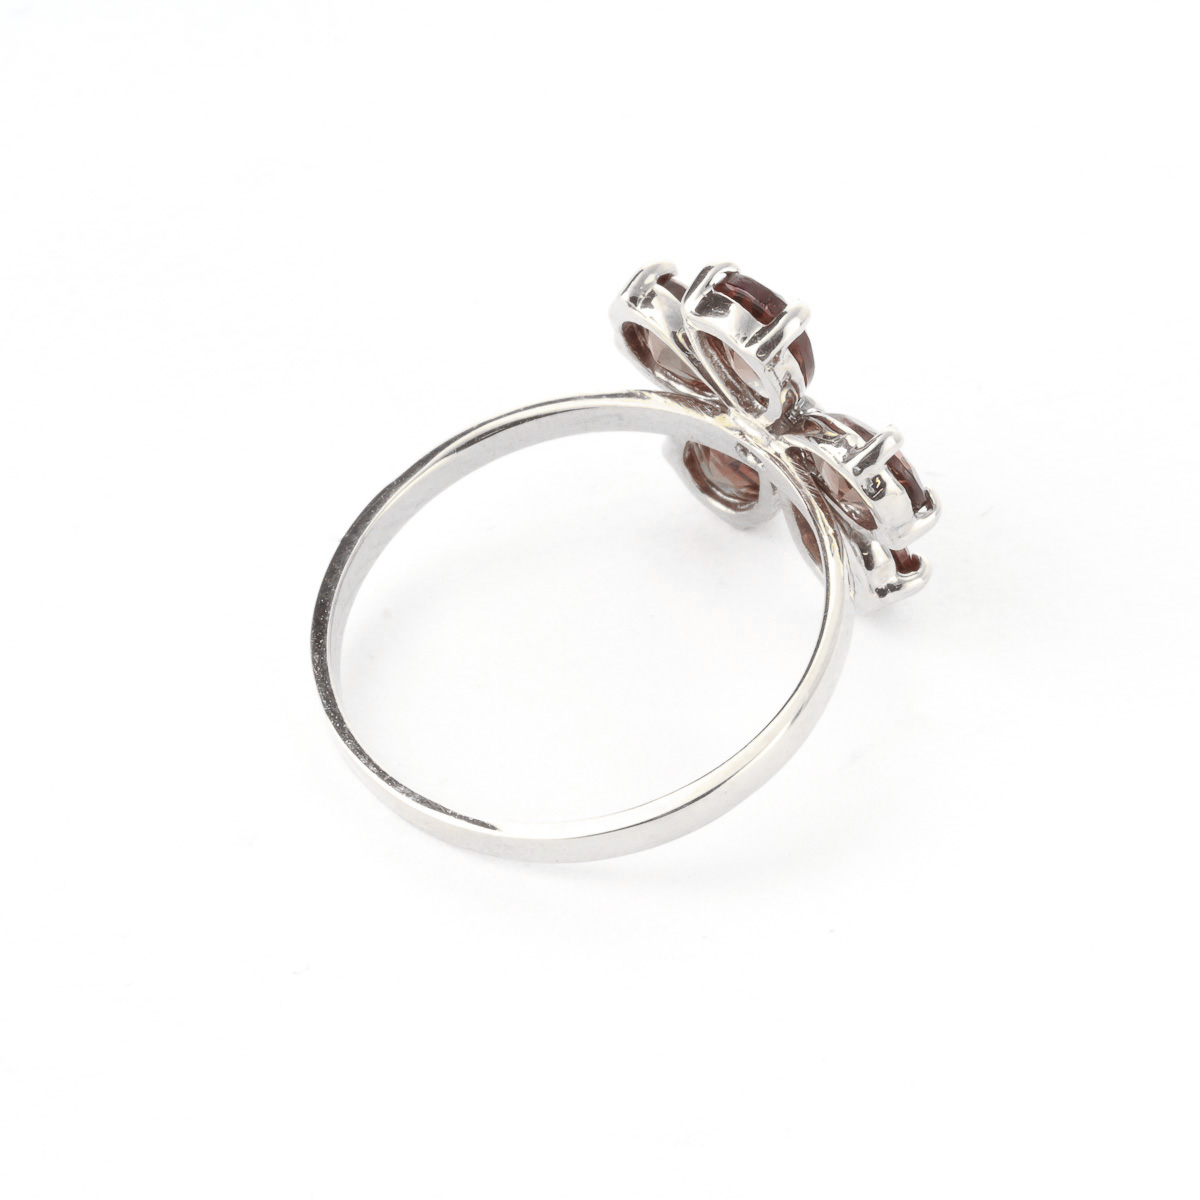 Garnet and Diamond Five Petal Ring 2.2ctw in 9ct White Gold